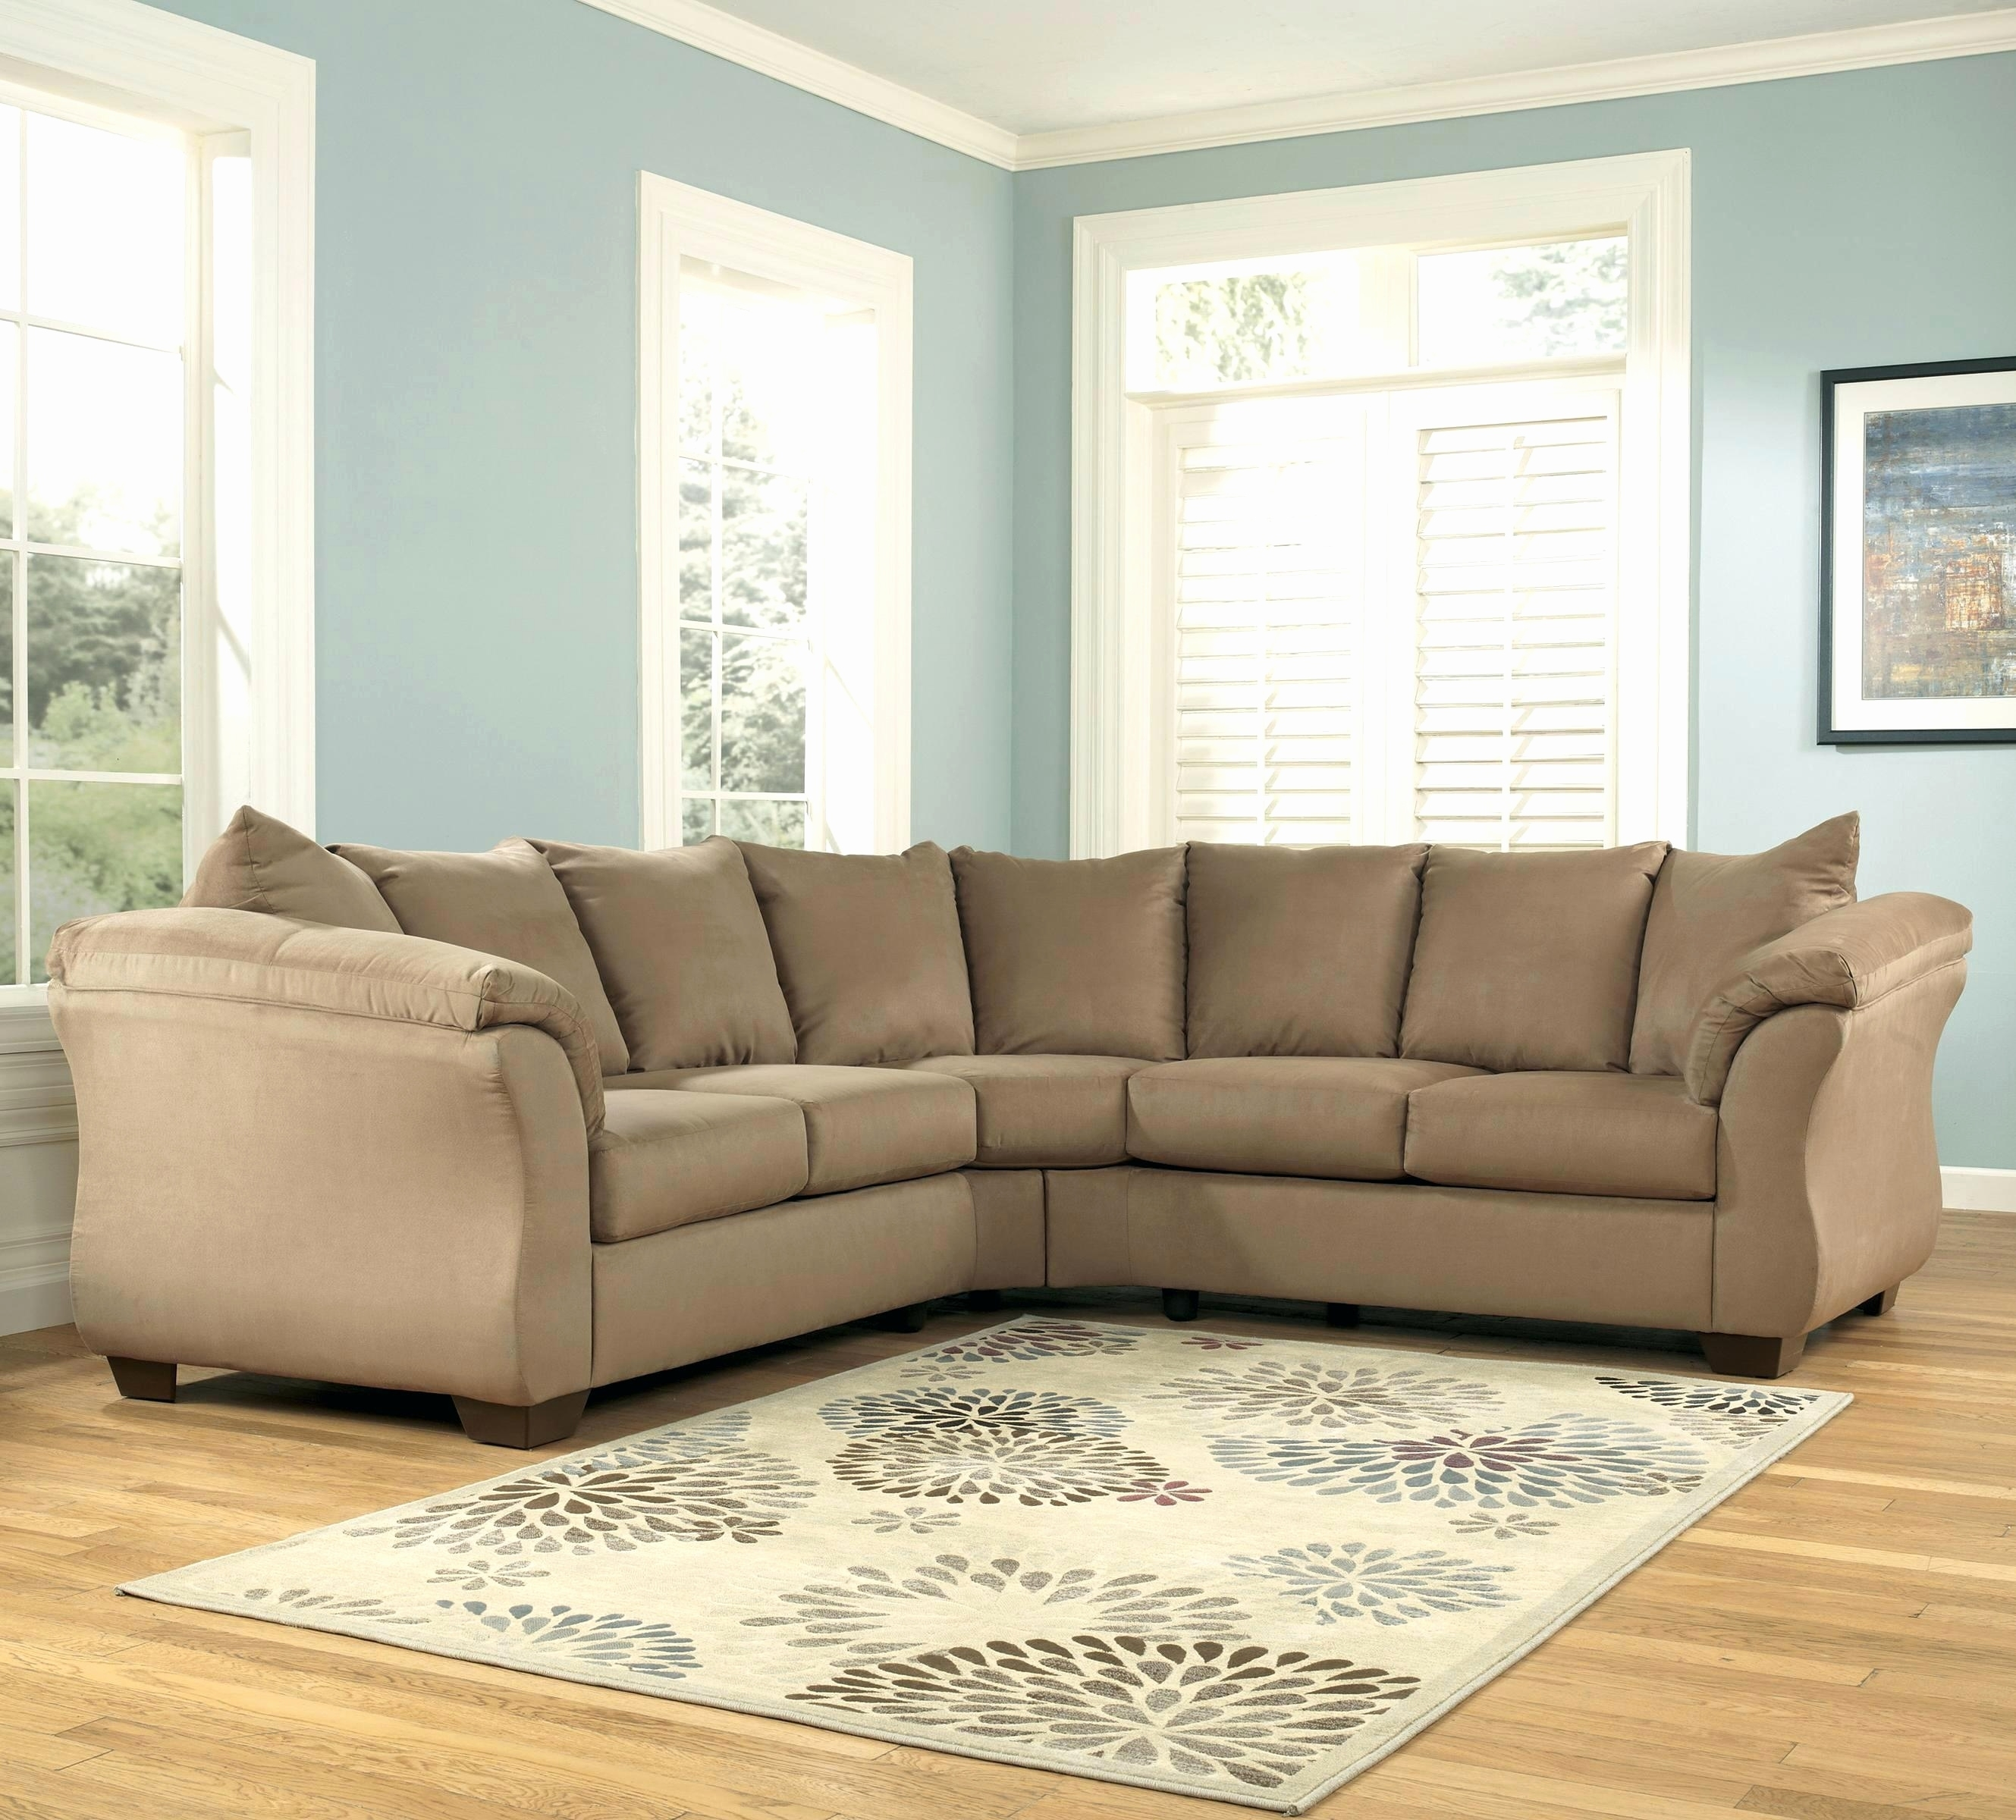 Sofa Sectionnel Usage A Vendre Montreal Baci Living Room - Best Furniture Store In Montreal